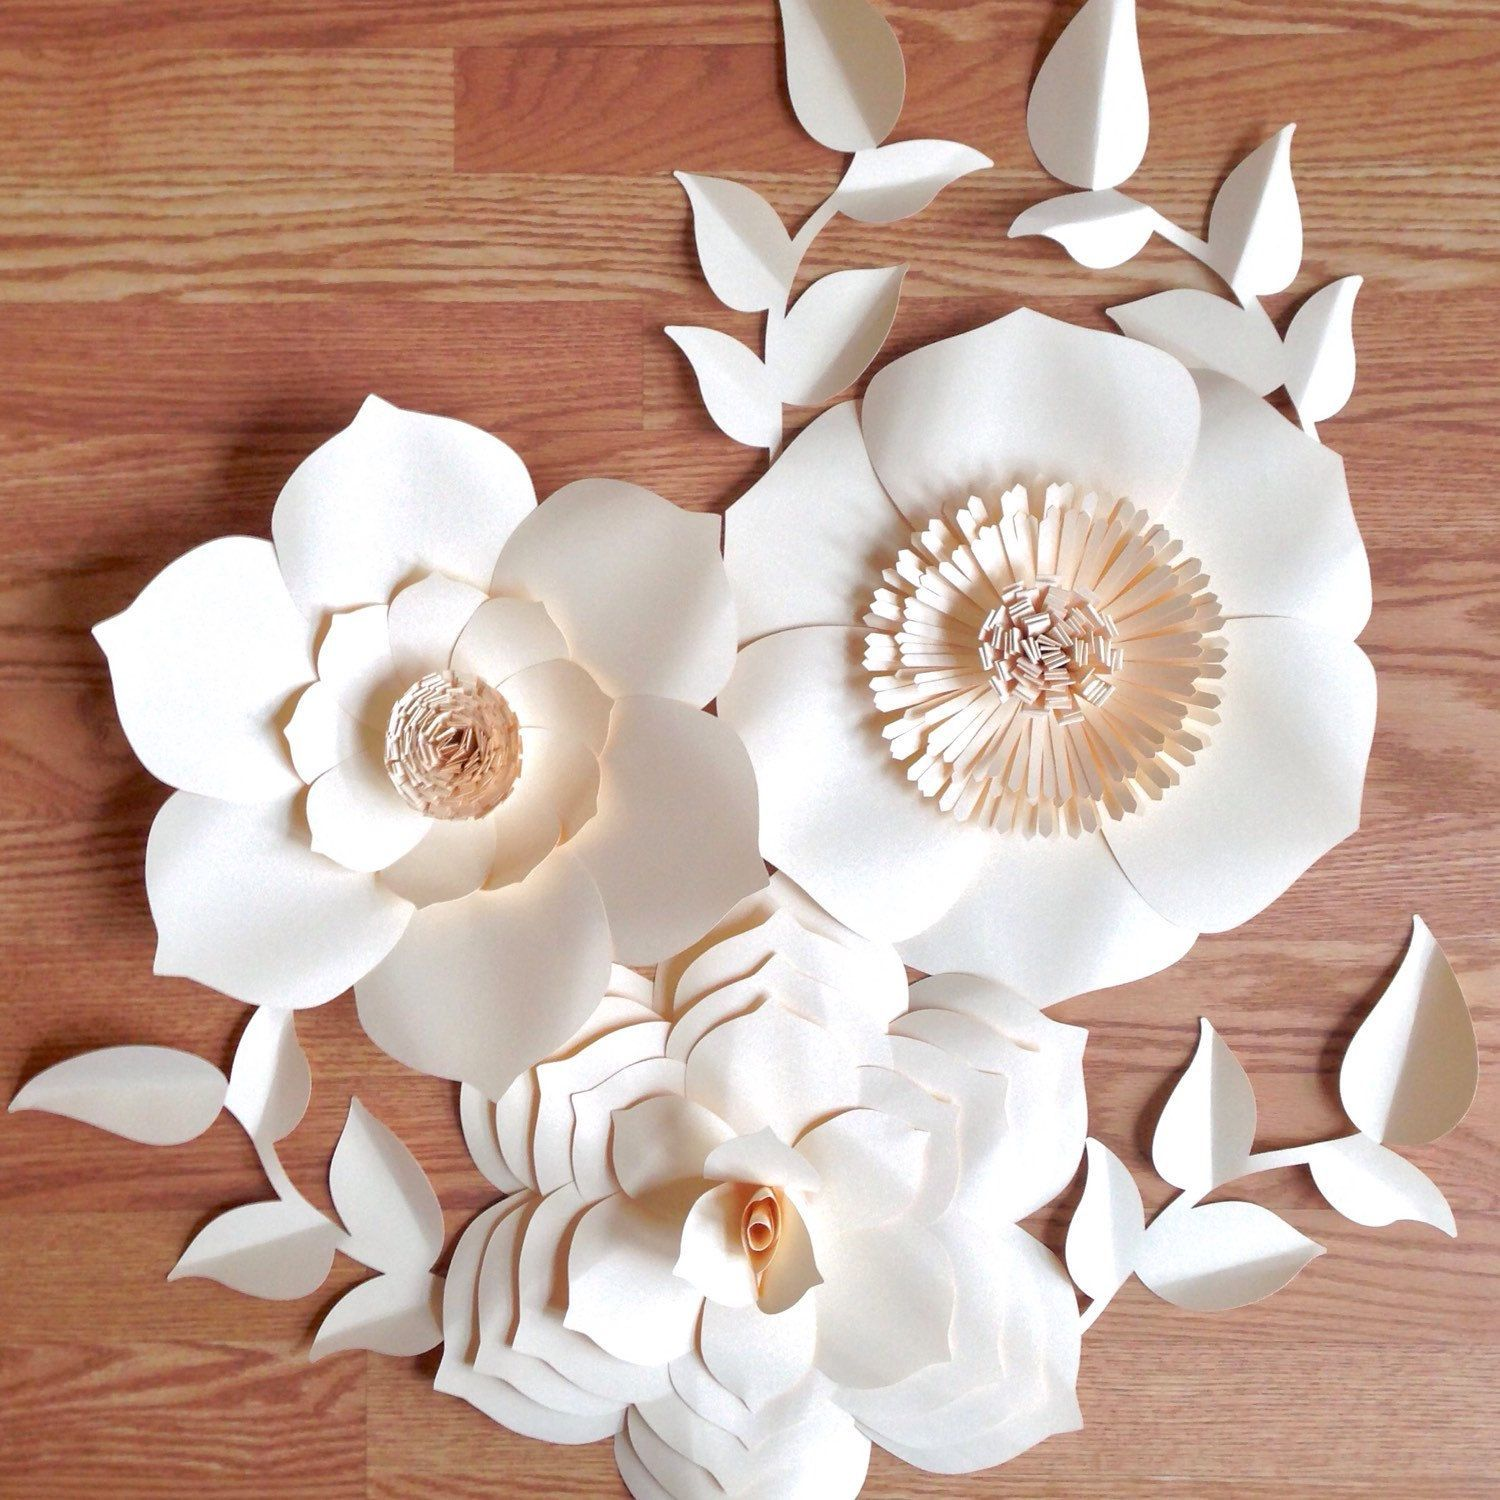 giant paper flower tutorial for wedding arch - Ronni